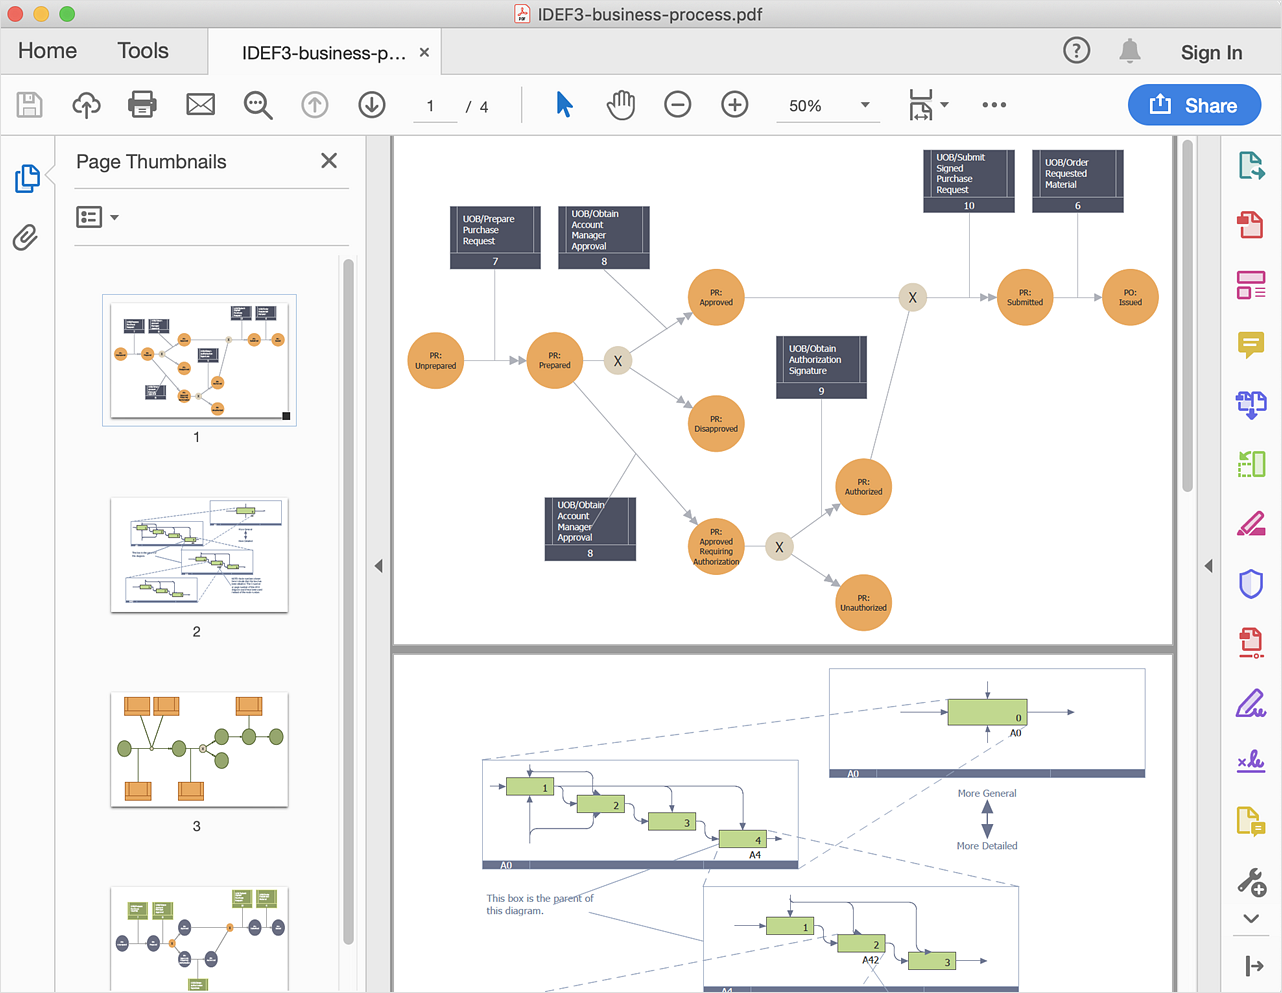 How To Convert a Business Process Diagram to Adobe PDF